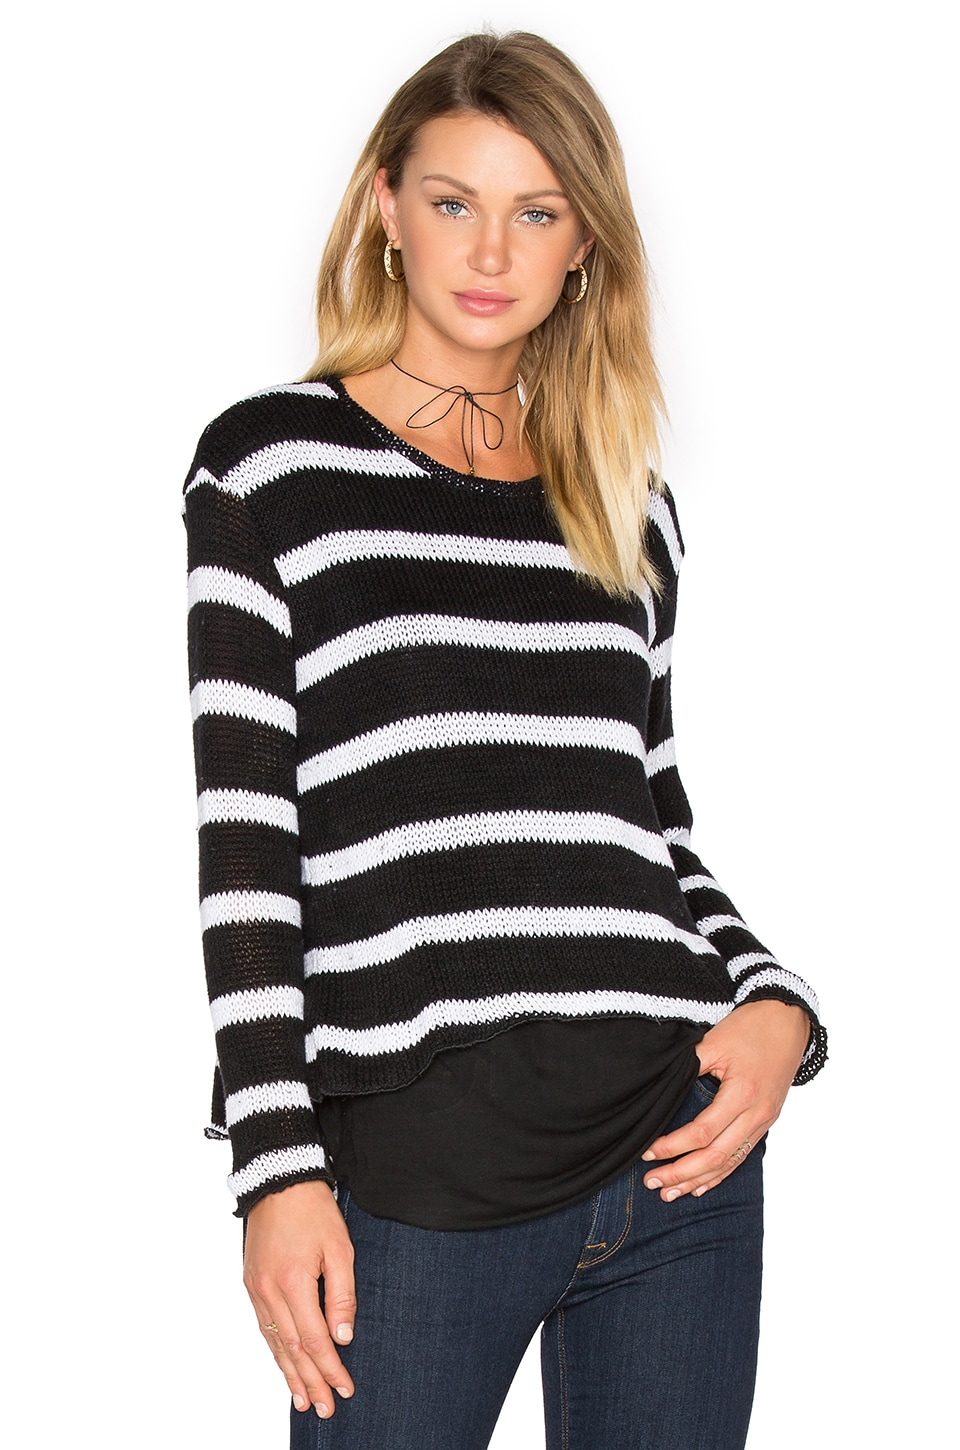 Molly Stripes Sweatshirt by Generation Love